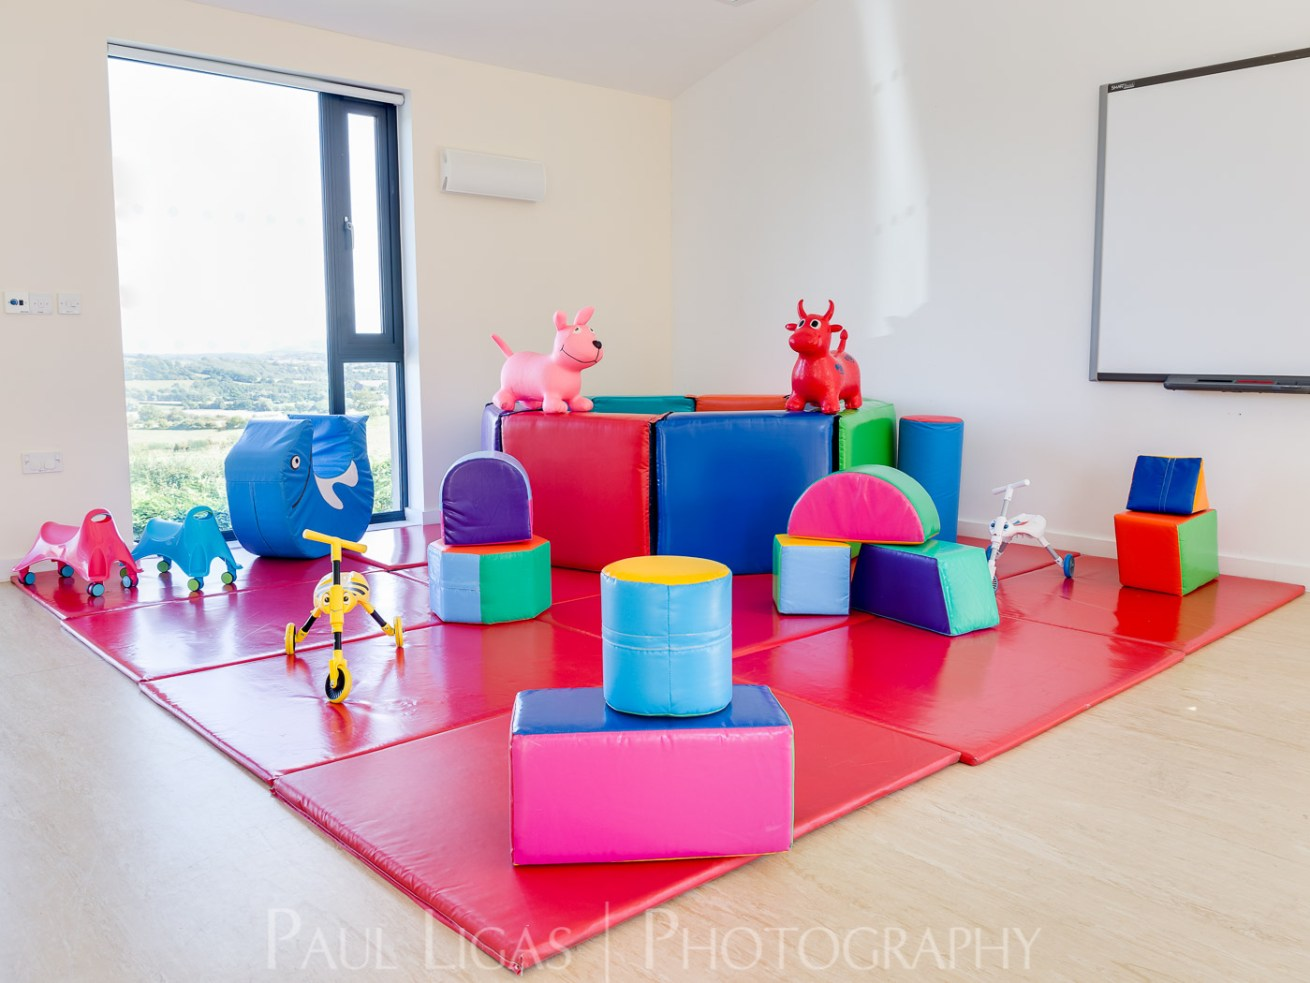 HOPE Family Centre, Bromyard, Herefordshire business lifestyle photographer photography 1268